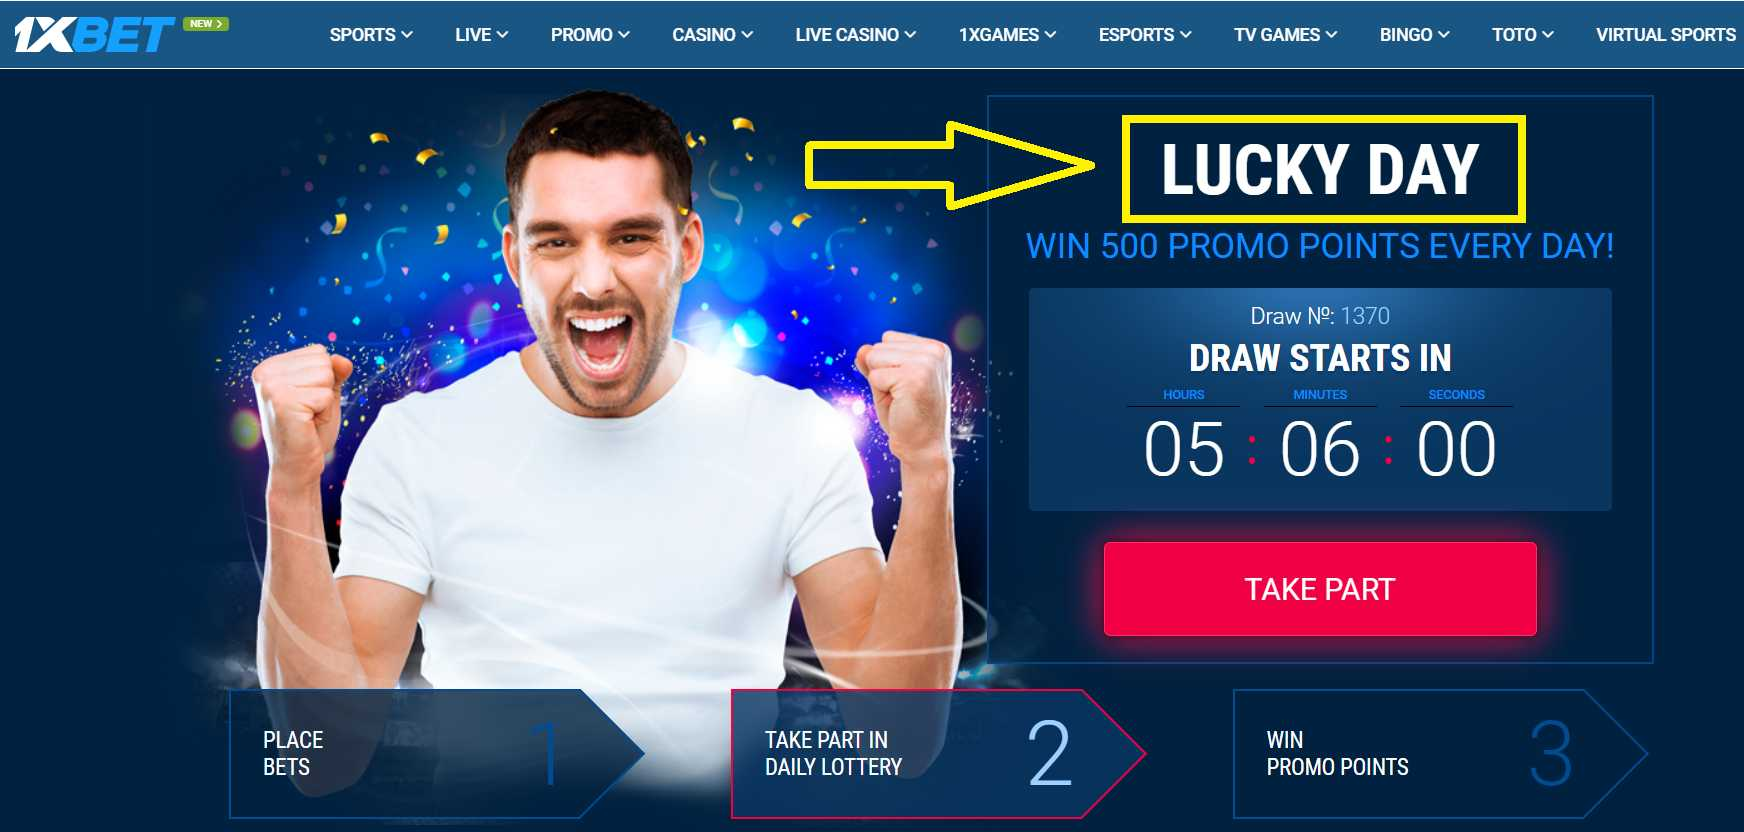 How to login to your account on the 1xBet site